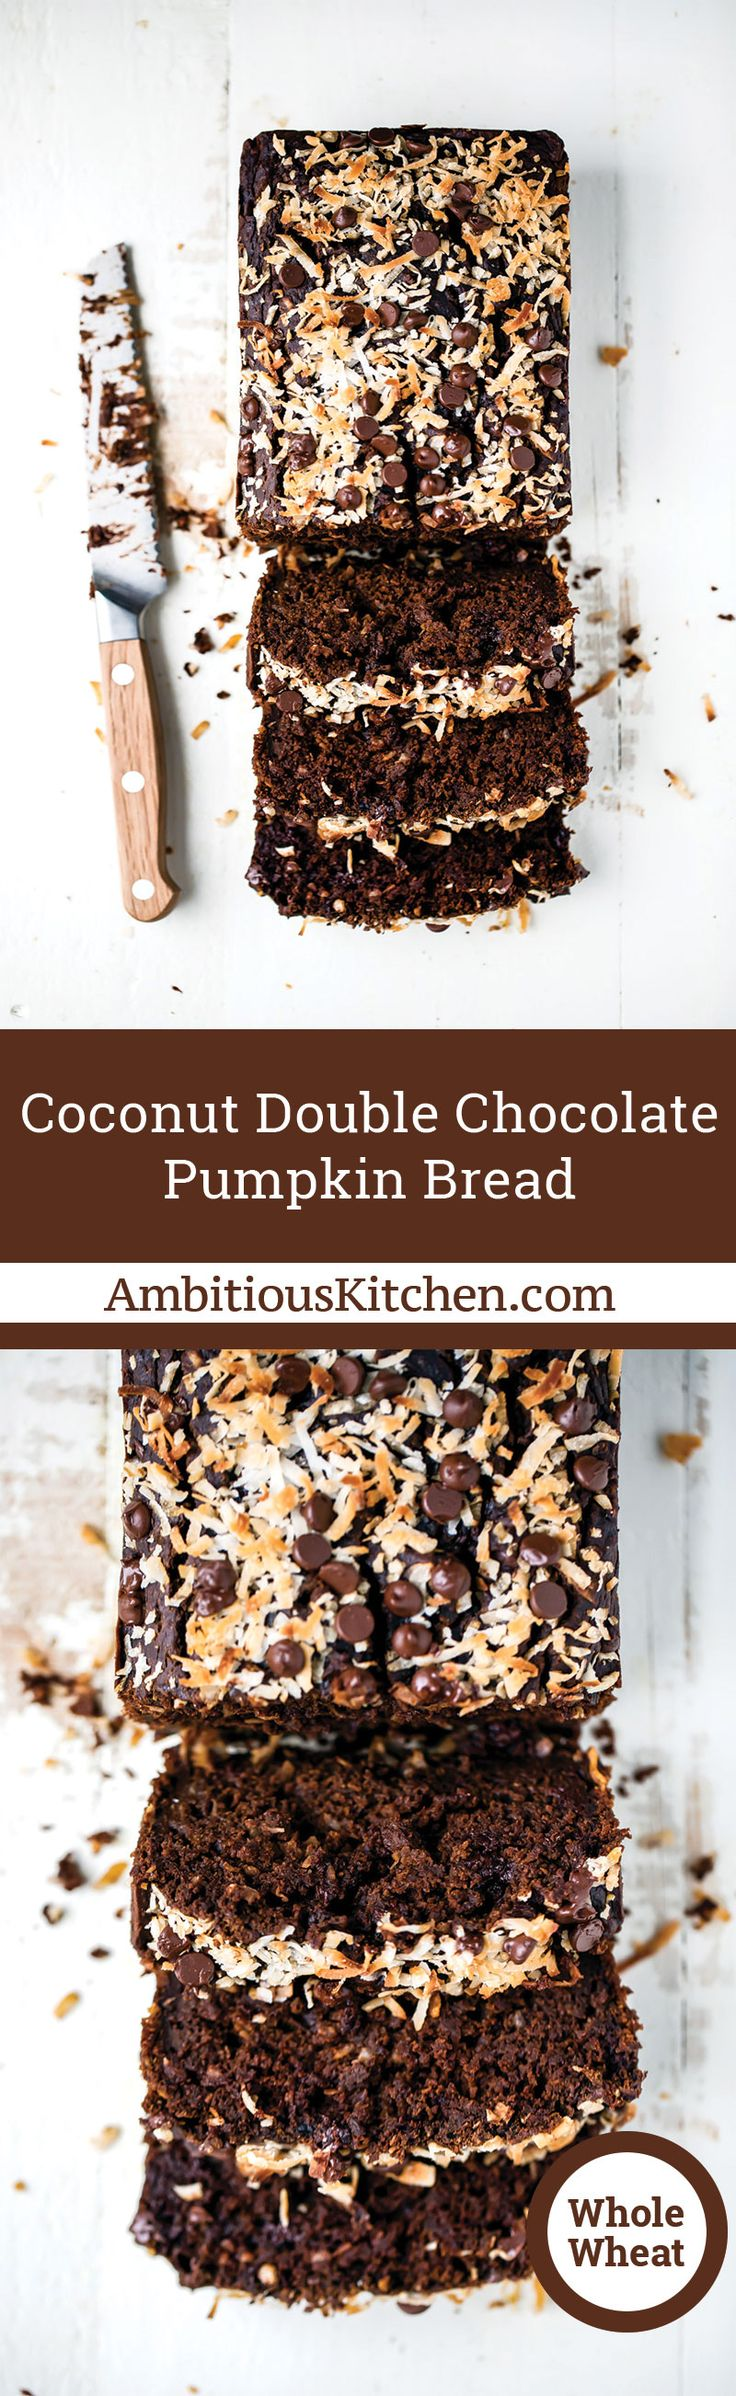 Coconut Double Chocolate Pumpkin Bread recipe from @moniquevolz